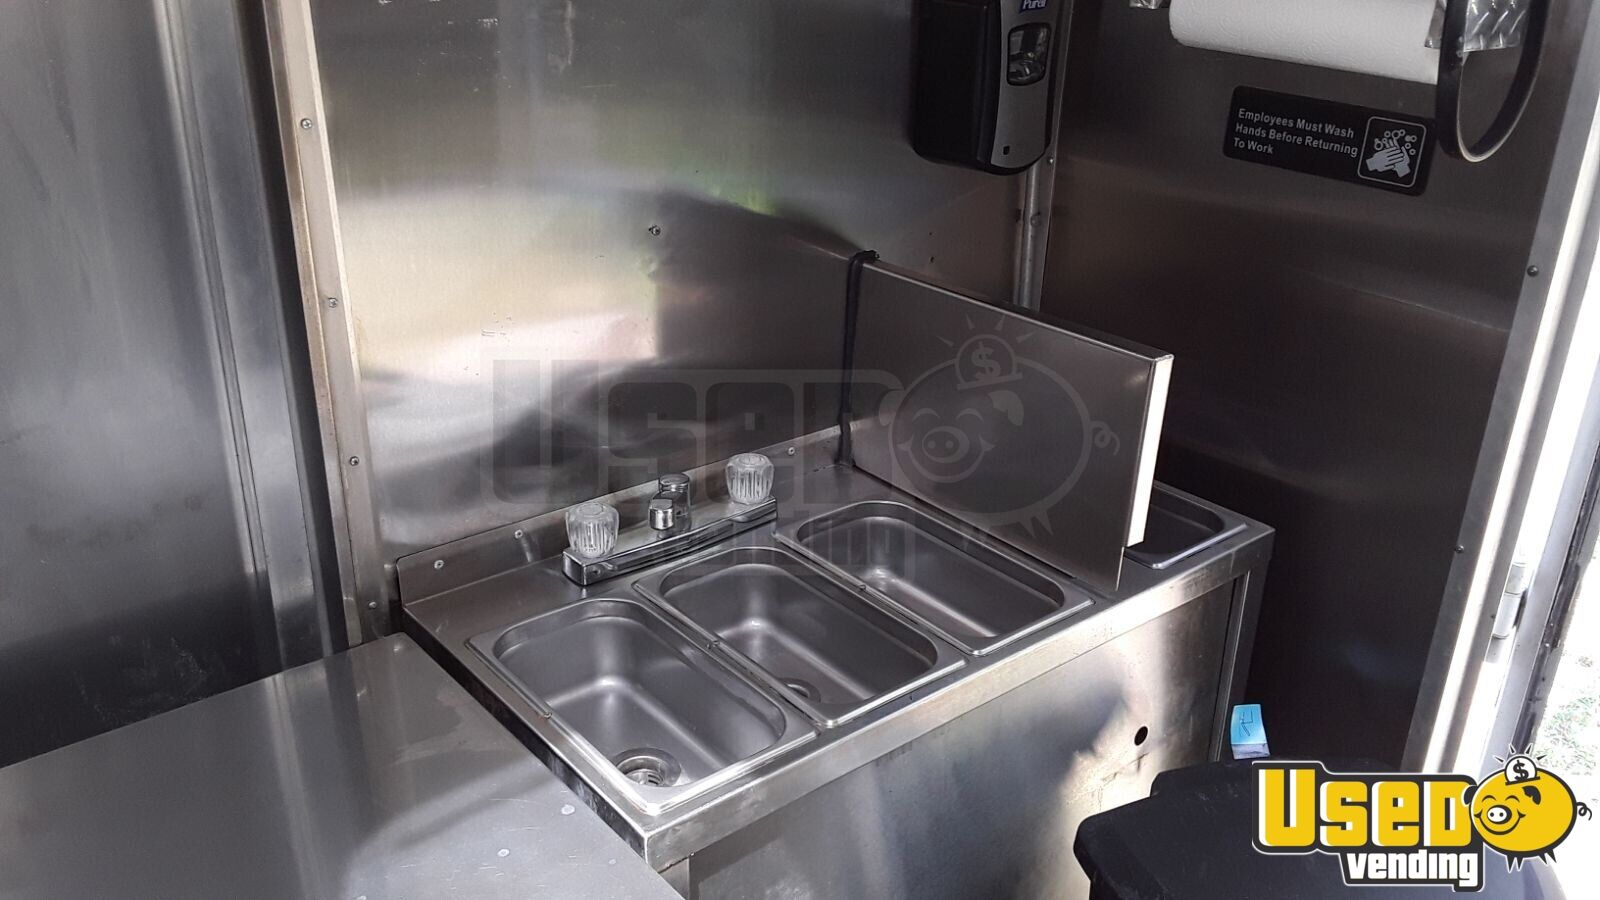 Details about Chevy P30 Workhorse Step Van Mobile Kitchen Food Truck for  Sale in Florida!!!